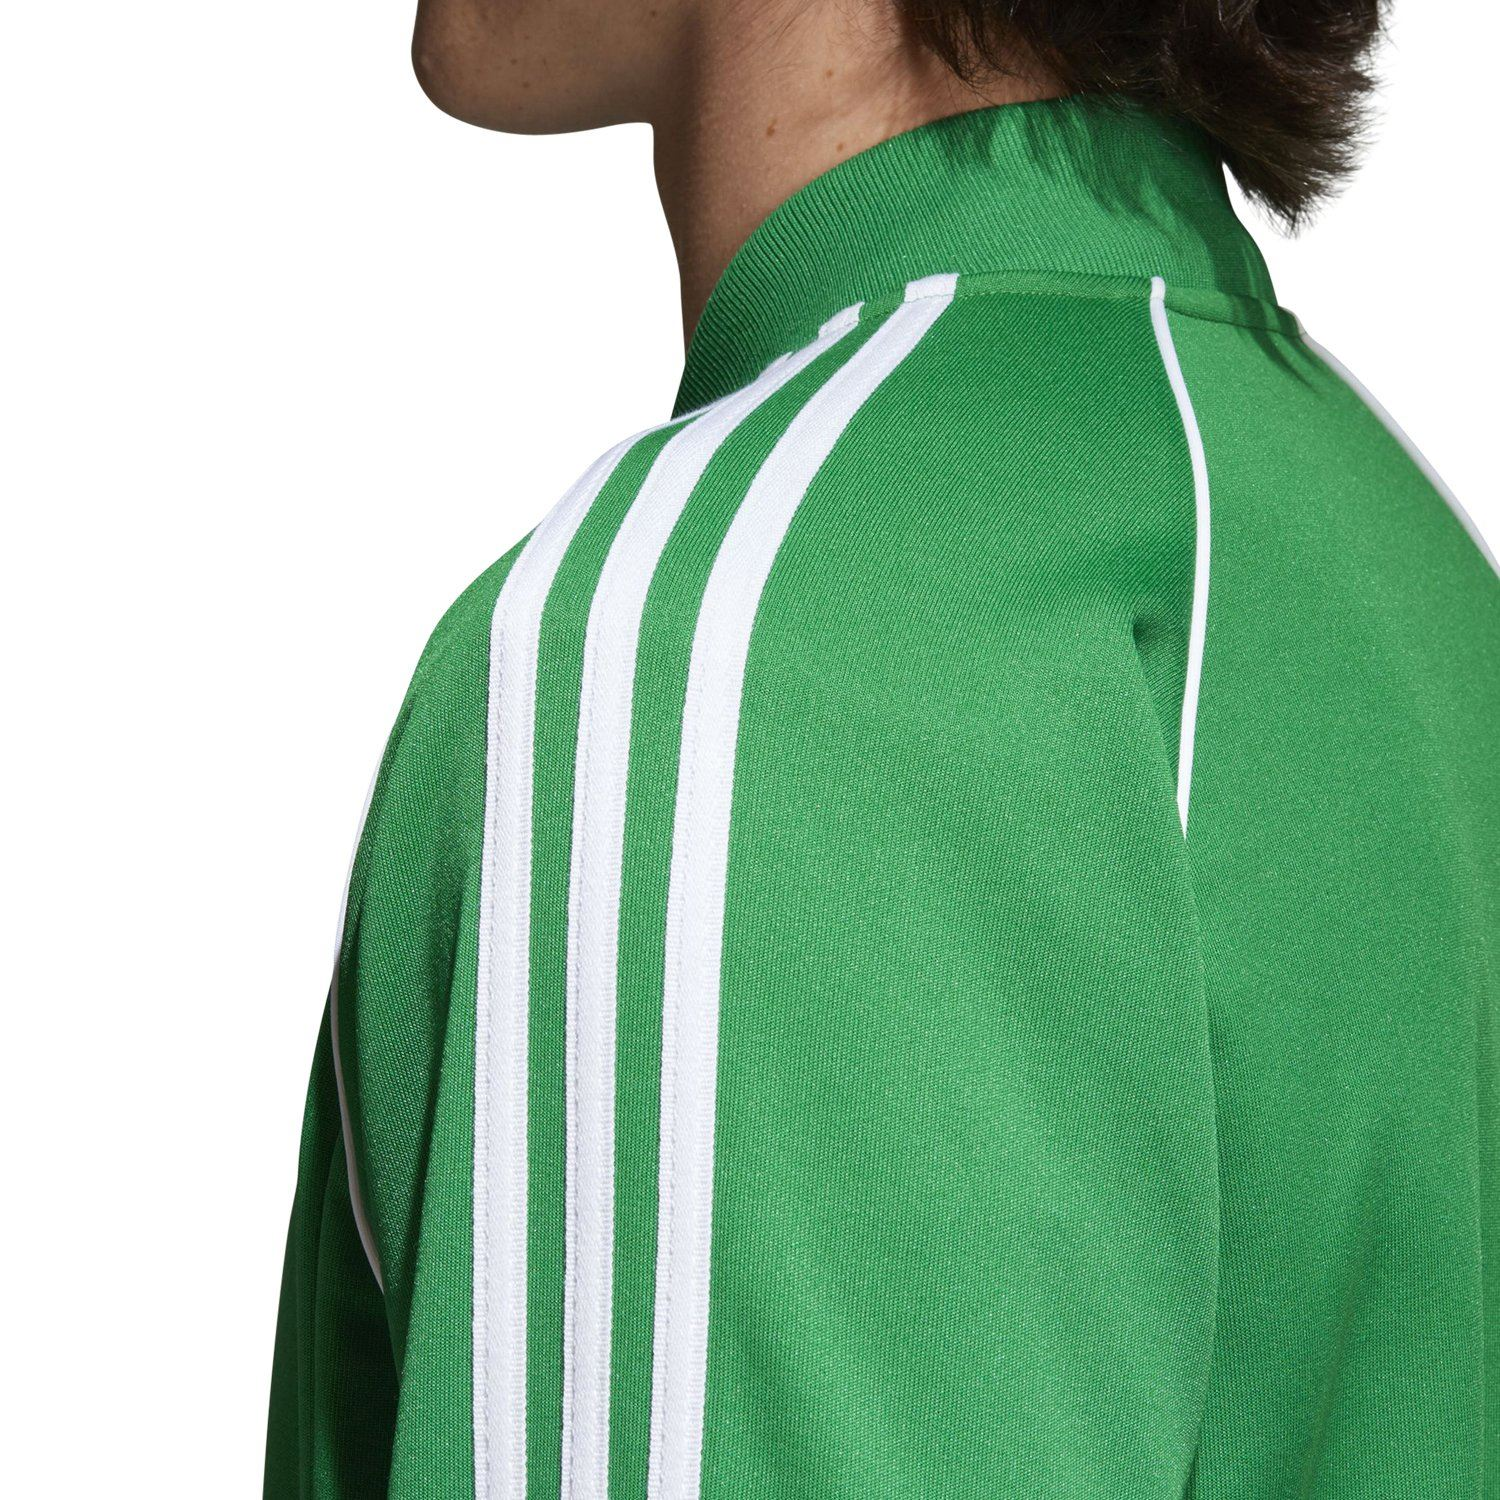 71a04c5ae0f1 adidas ORIGINALS SUPERSTAR TRACK JACKET GREEN RETRO ADICOLOR 3 STRIPES SST  MEN S